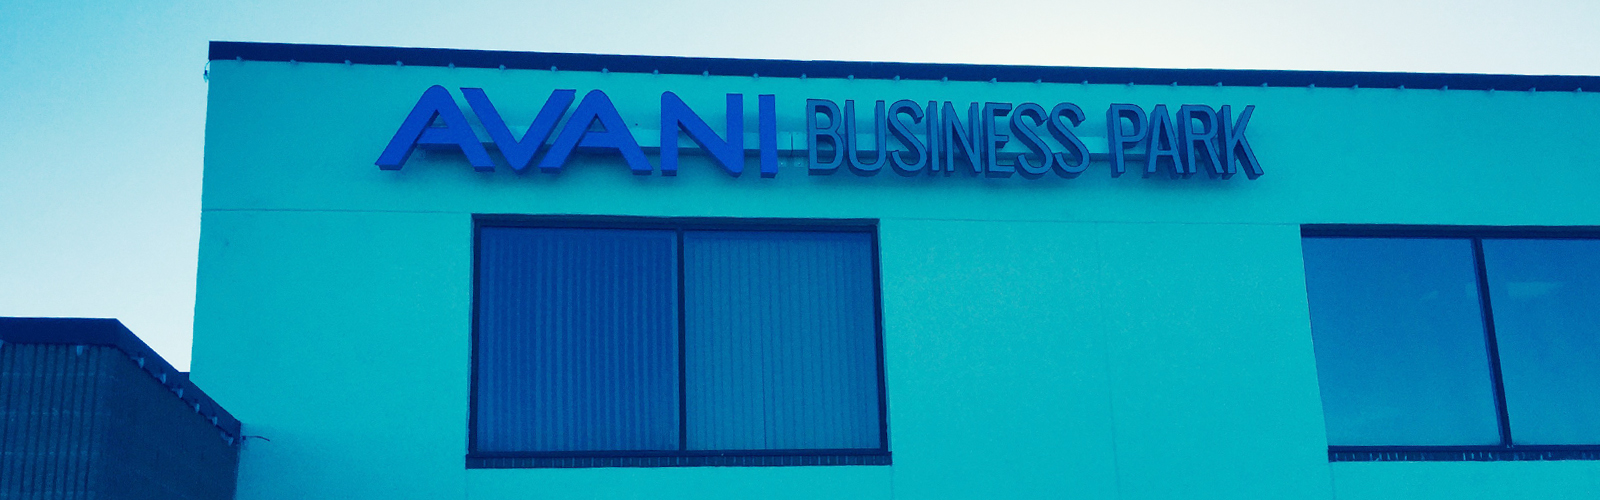 Avani Business Park LLC